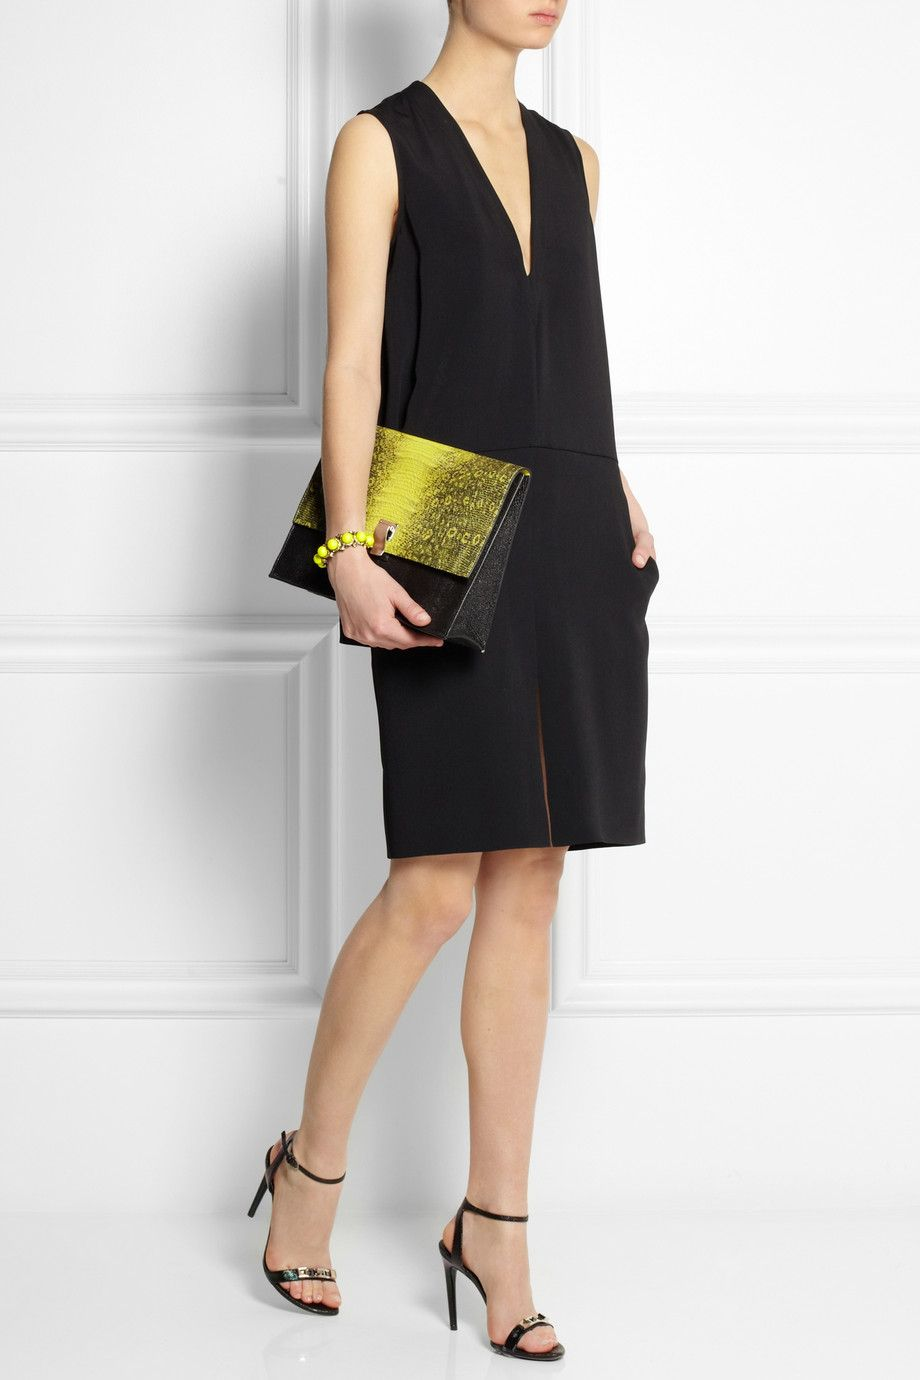 Proenza Schouler | Lunch Bag lizard-effect leather clutch and shoes with a Stella McCartney dress